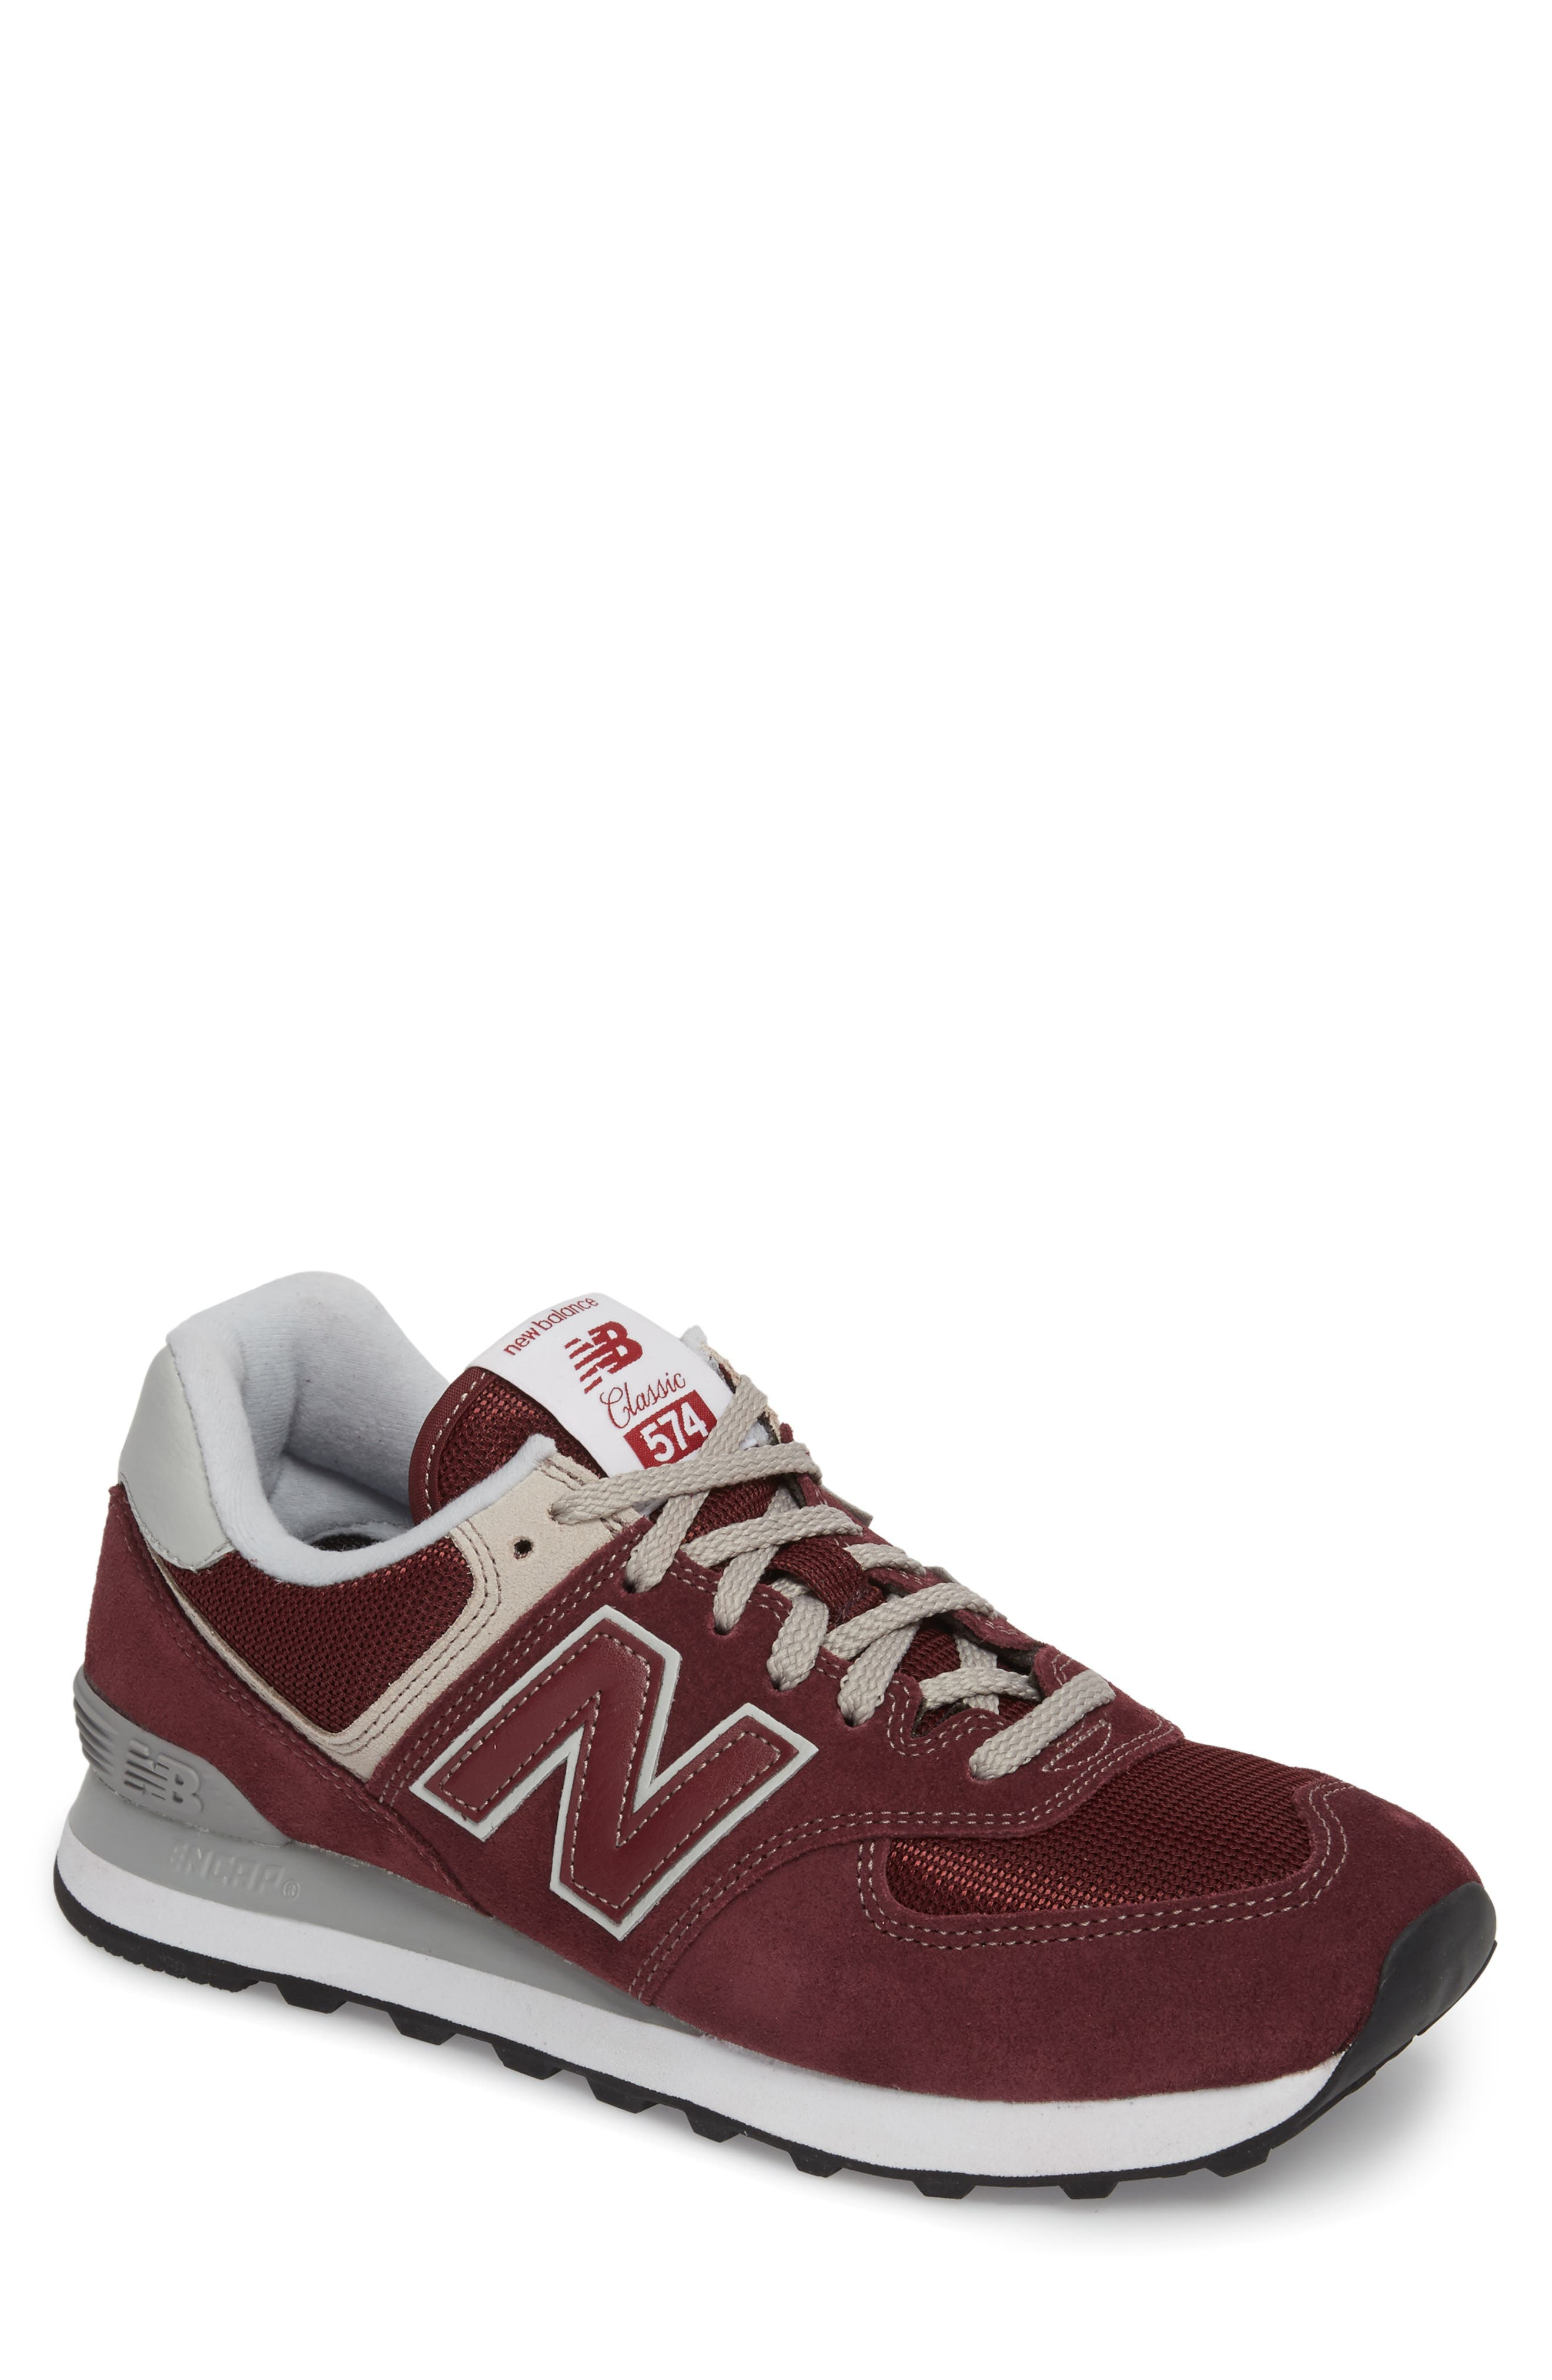 daab64d05 New Balance - Men's Casual Fashion Shoes and Sneakers